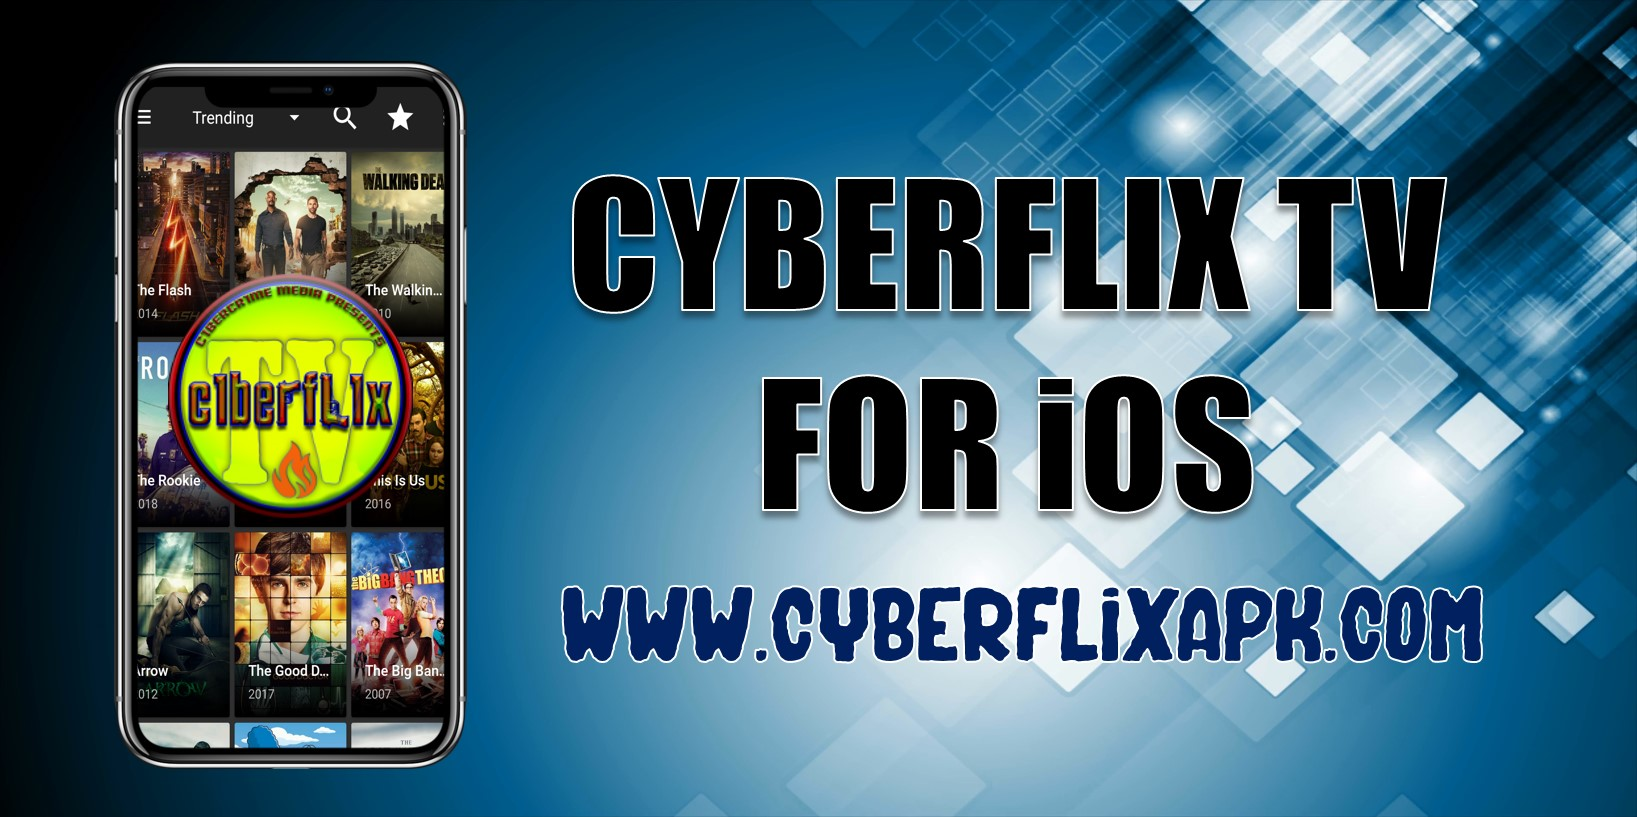 cyberflix tv for ios